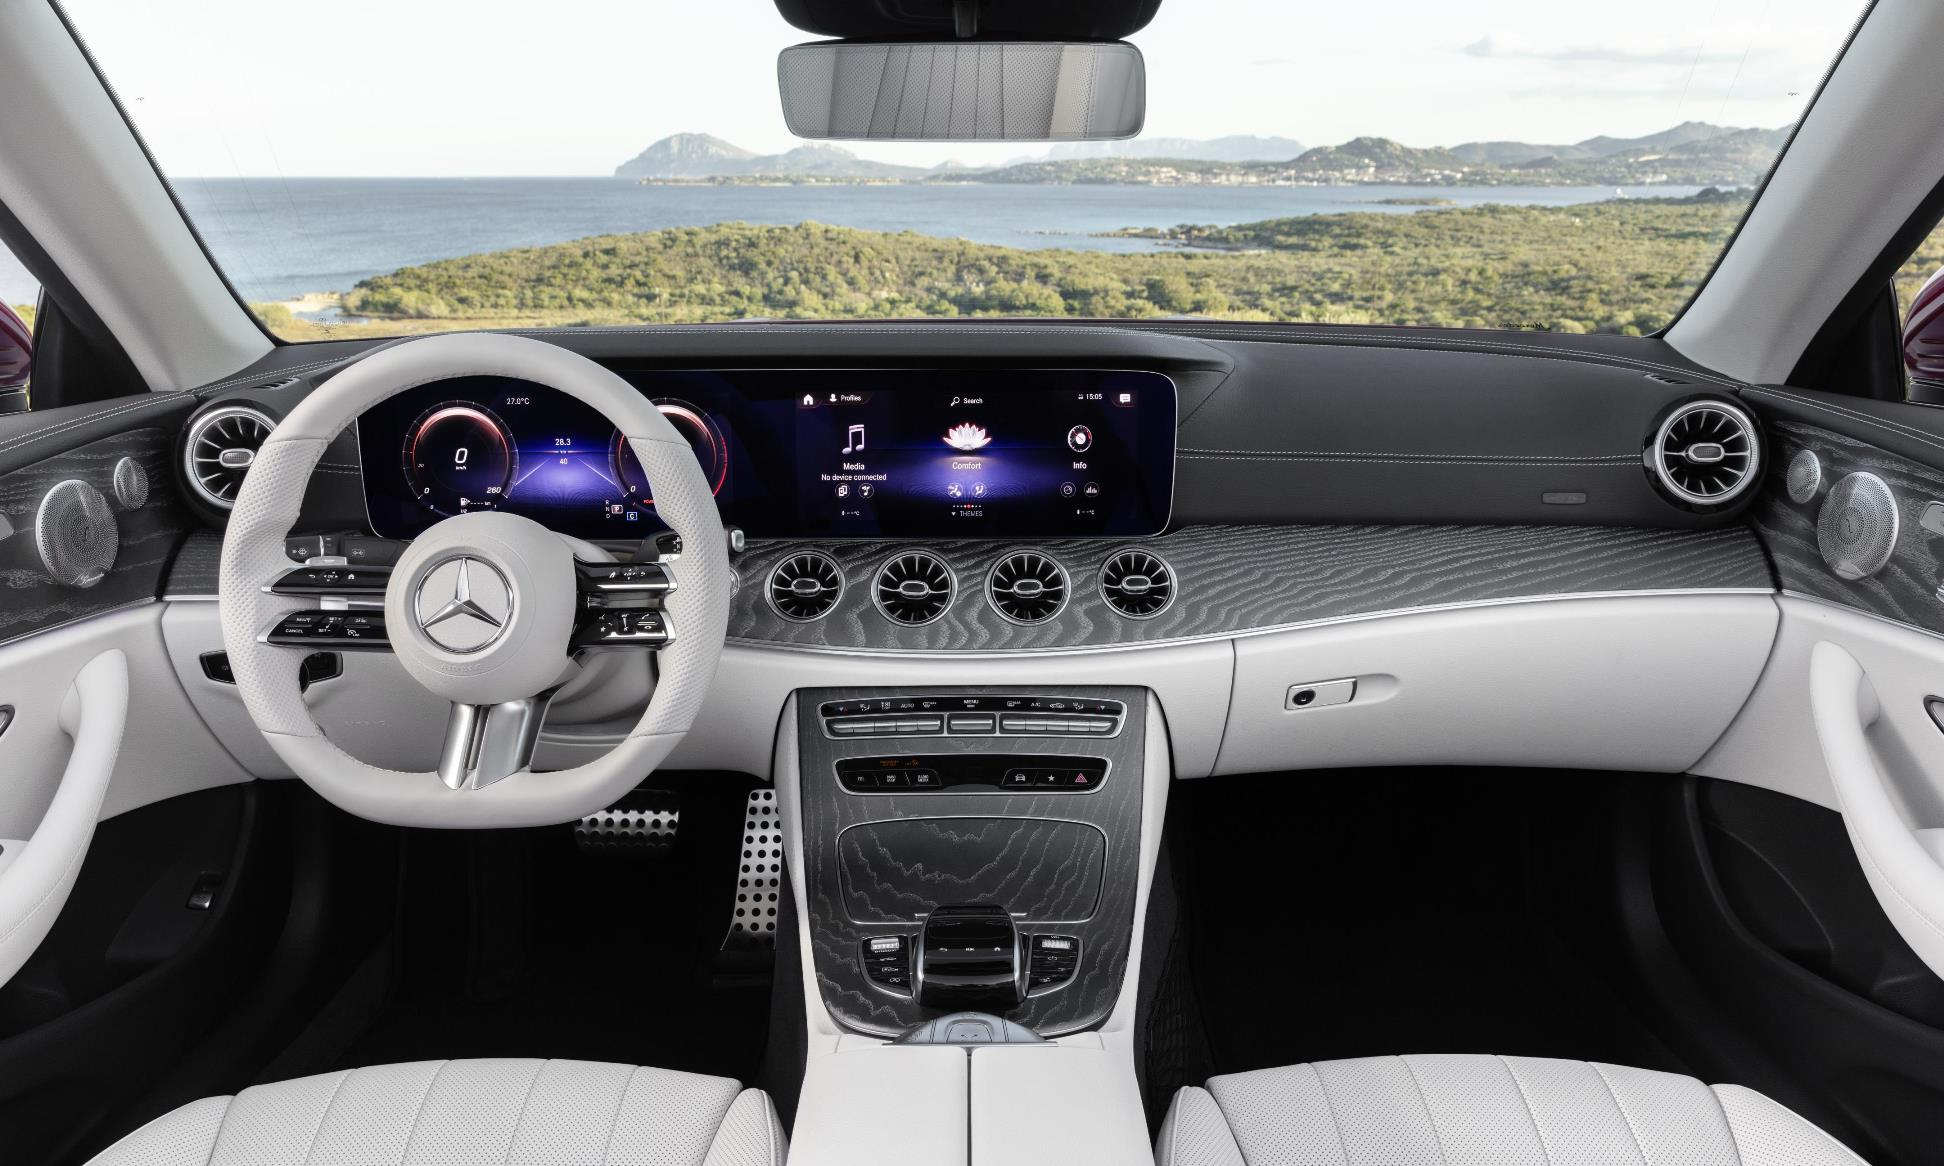 Facelifted Mercedes-Benz E-Class interior